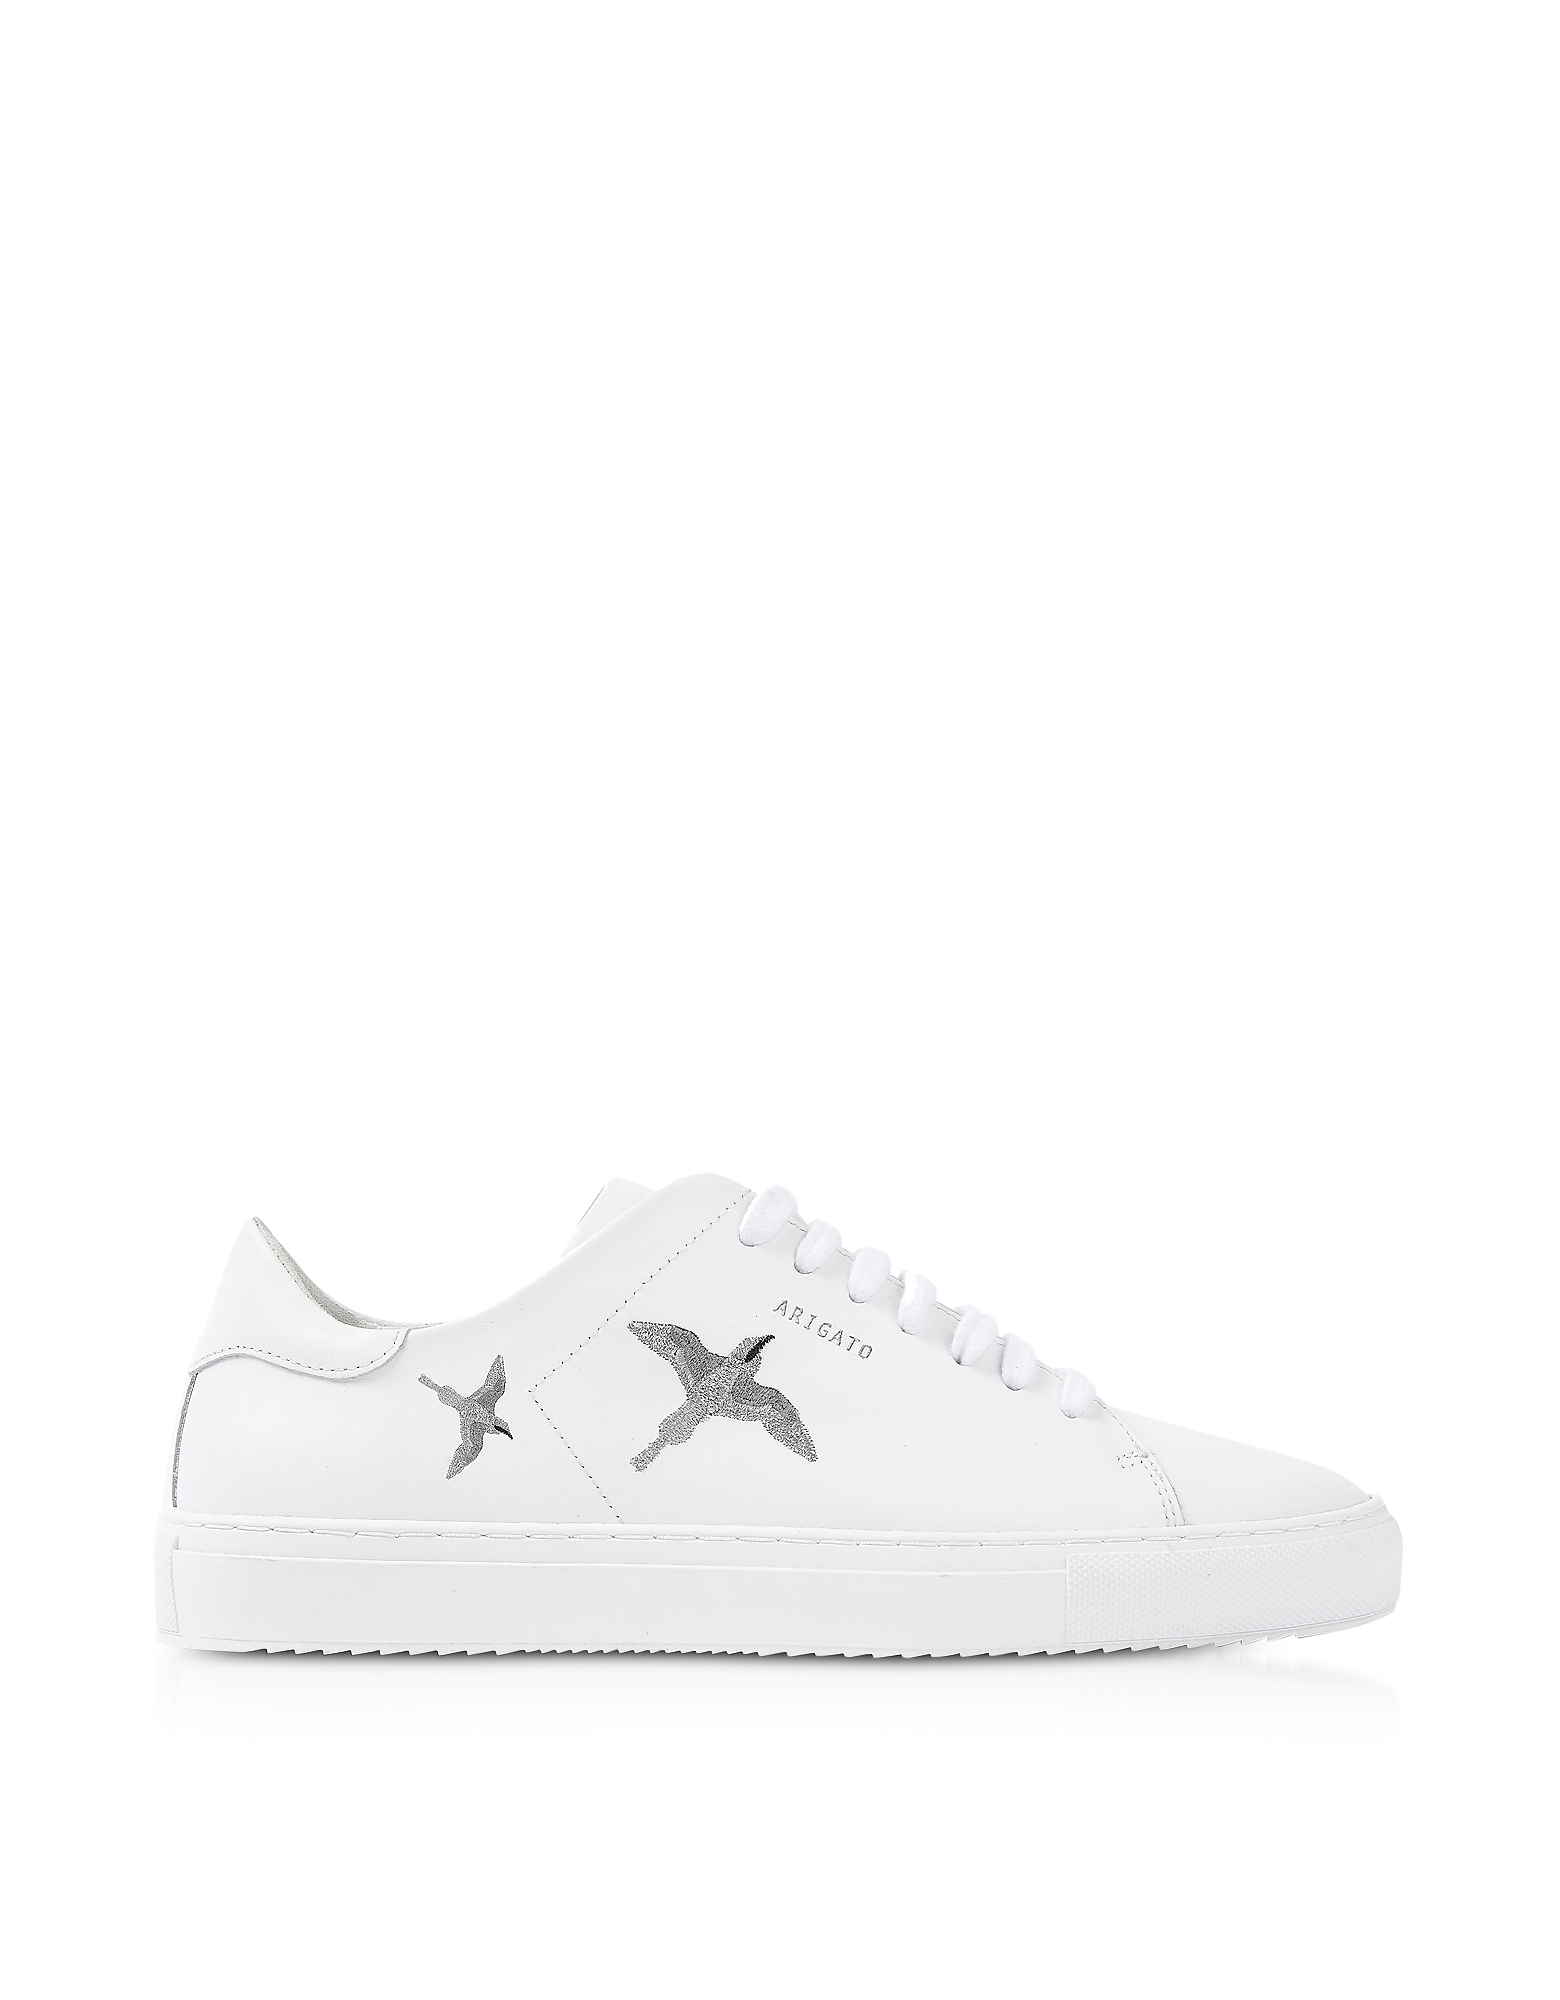 Clean 90 Bird White & Silver Leather Women's Sneakers